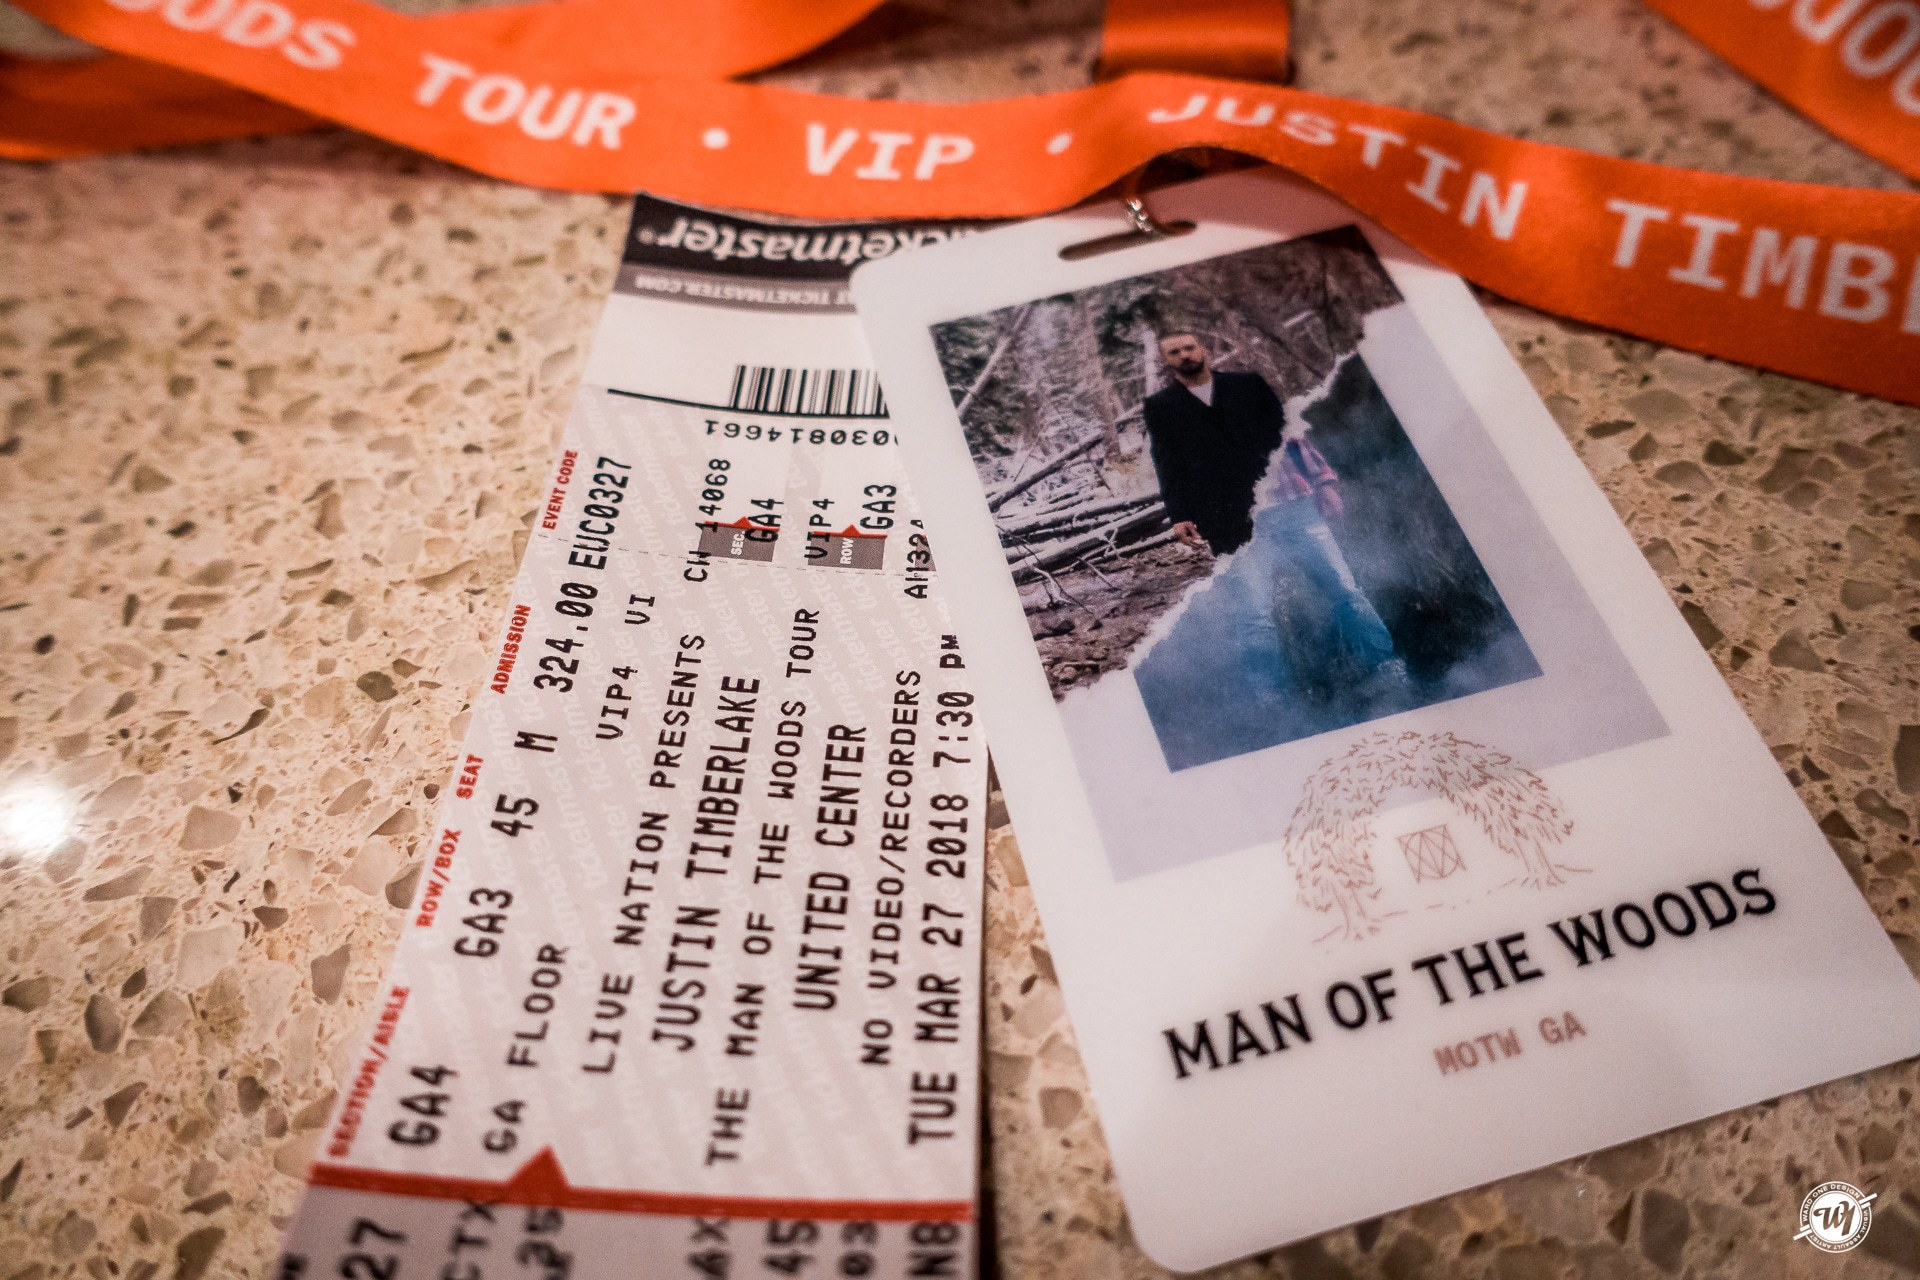 Justin Timberlake - Man of the Woods Tour - Chicago 3.27.2018